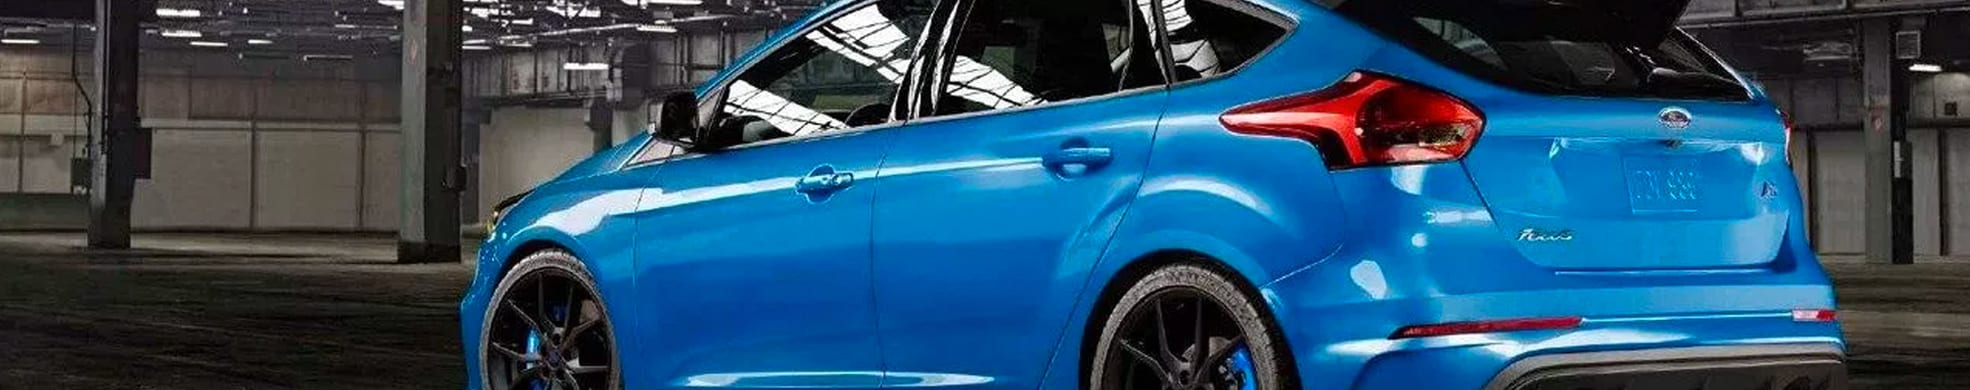 Comparing the 2017 and 2018 Ford Focus RS in Edmonton